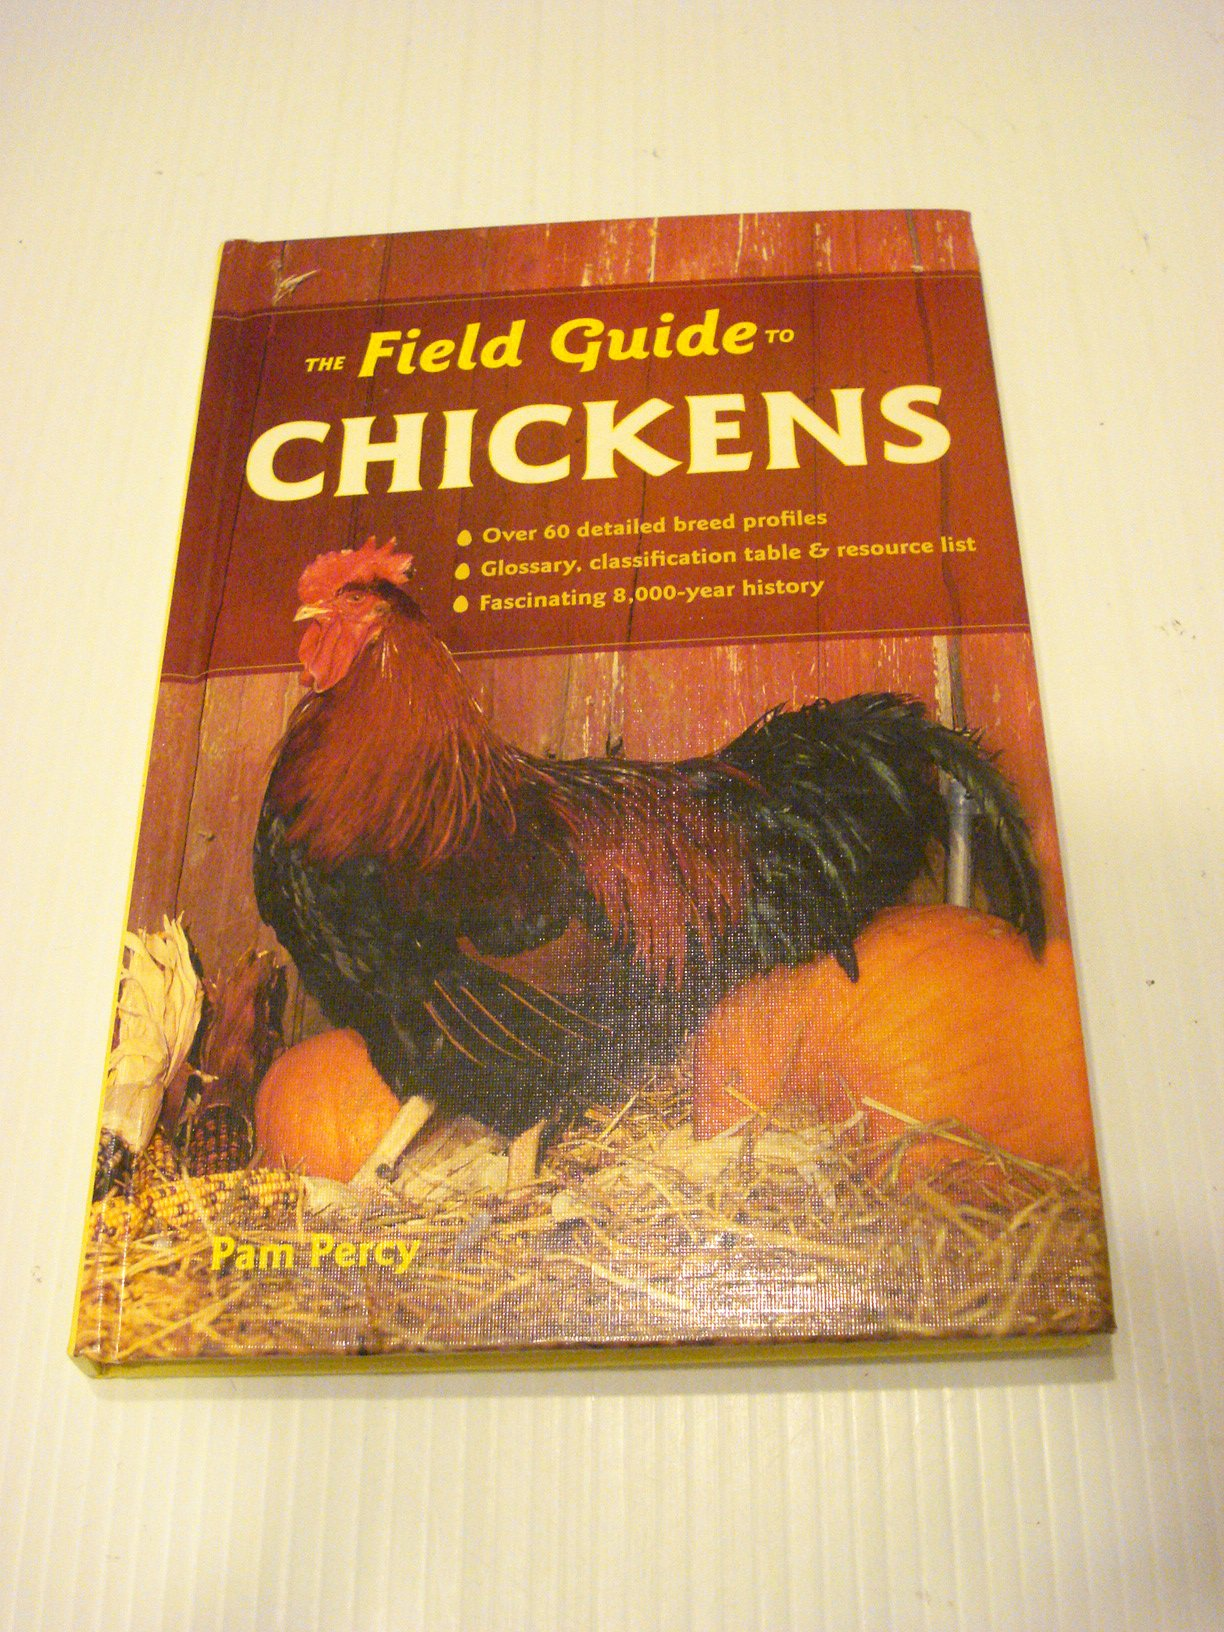 The Field Guide to Chickens pdf